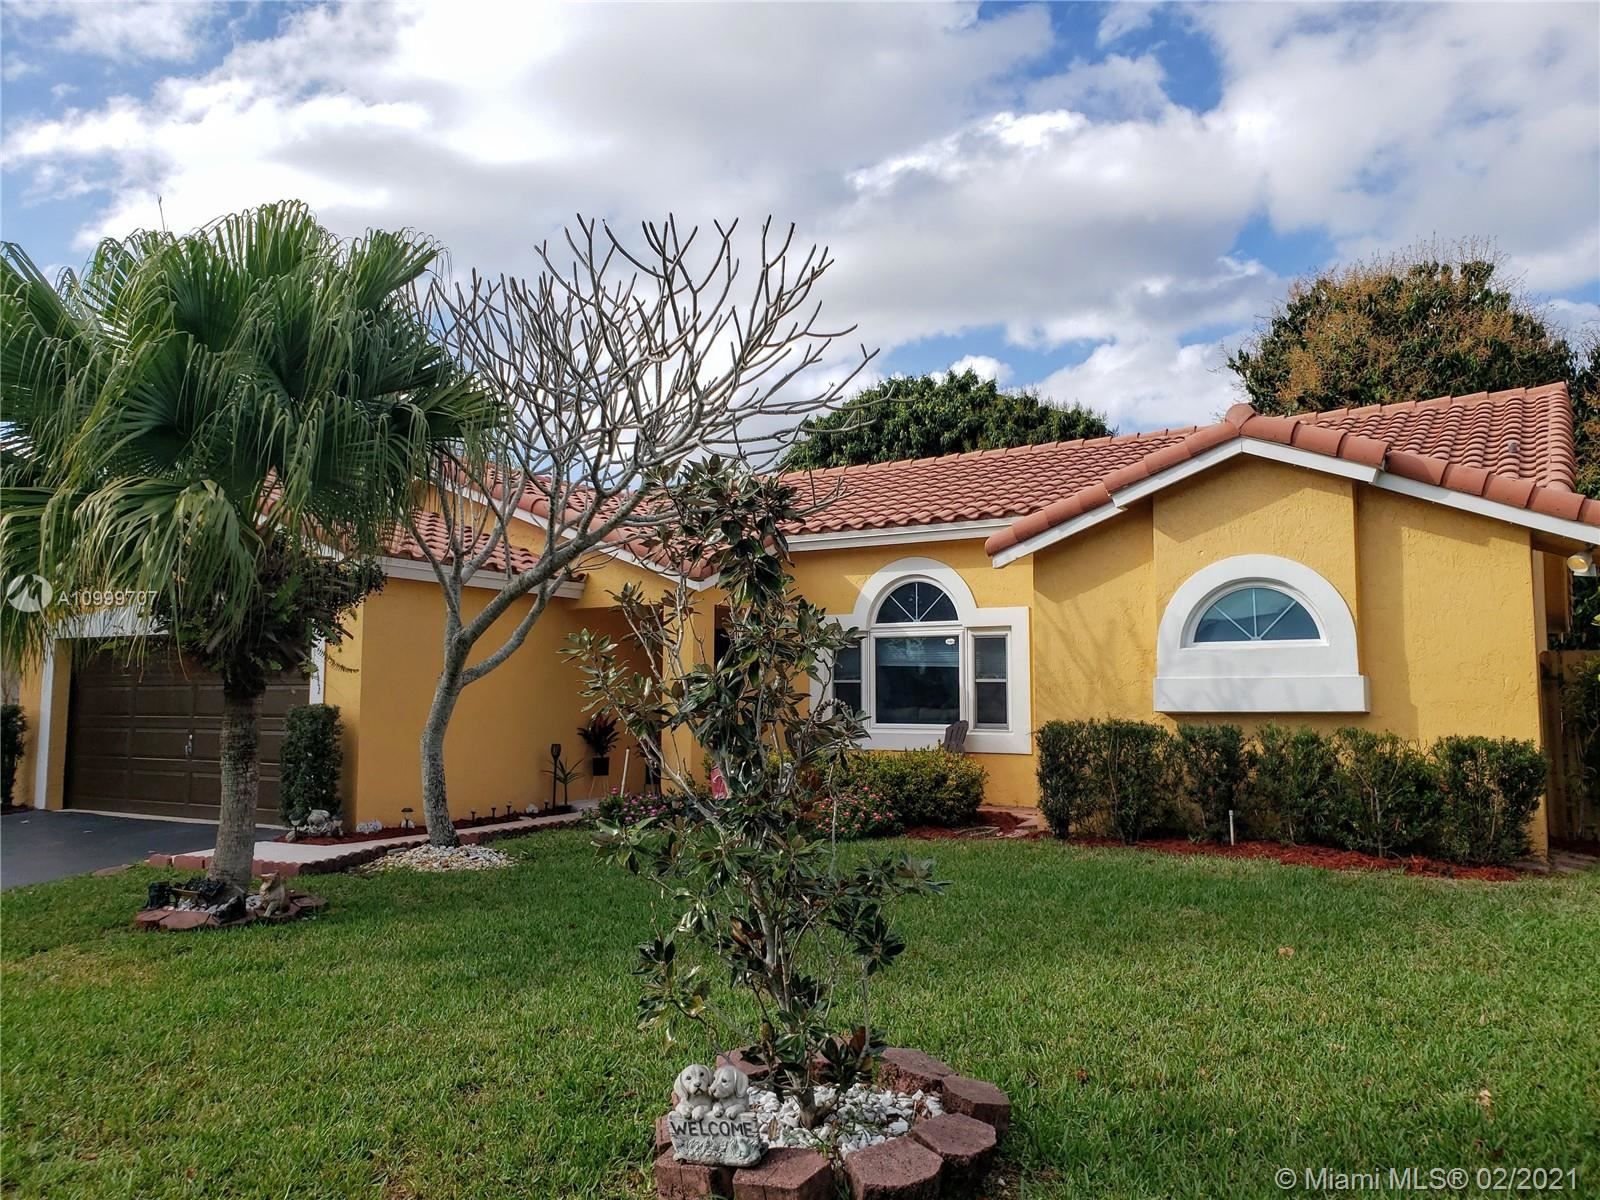 Photo of 9863 NW 28th St, Coral Springs, FL 33065 (MLS # A10999707)